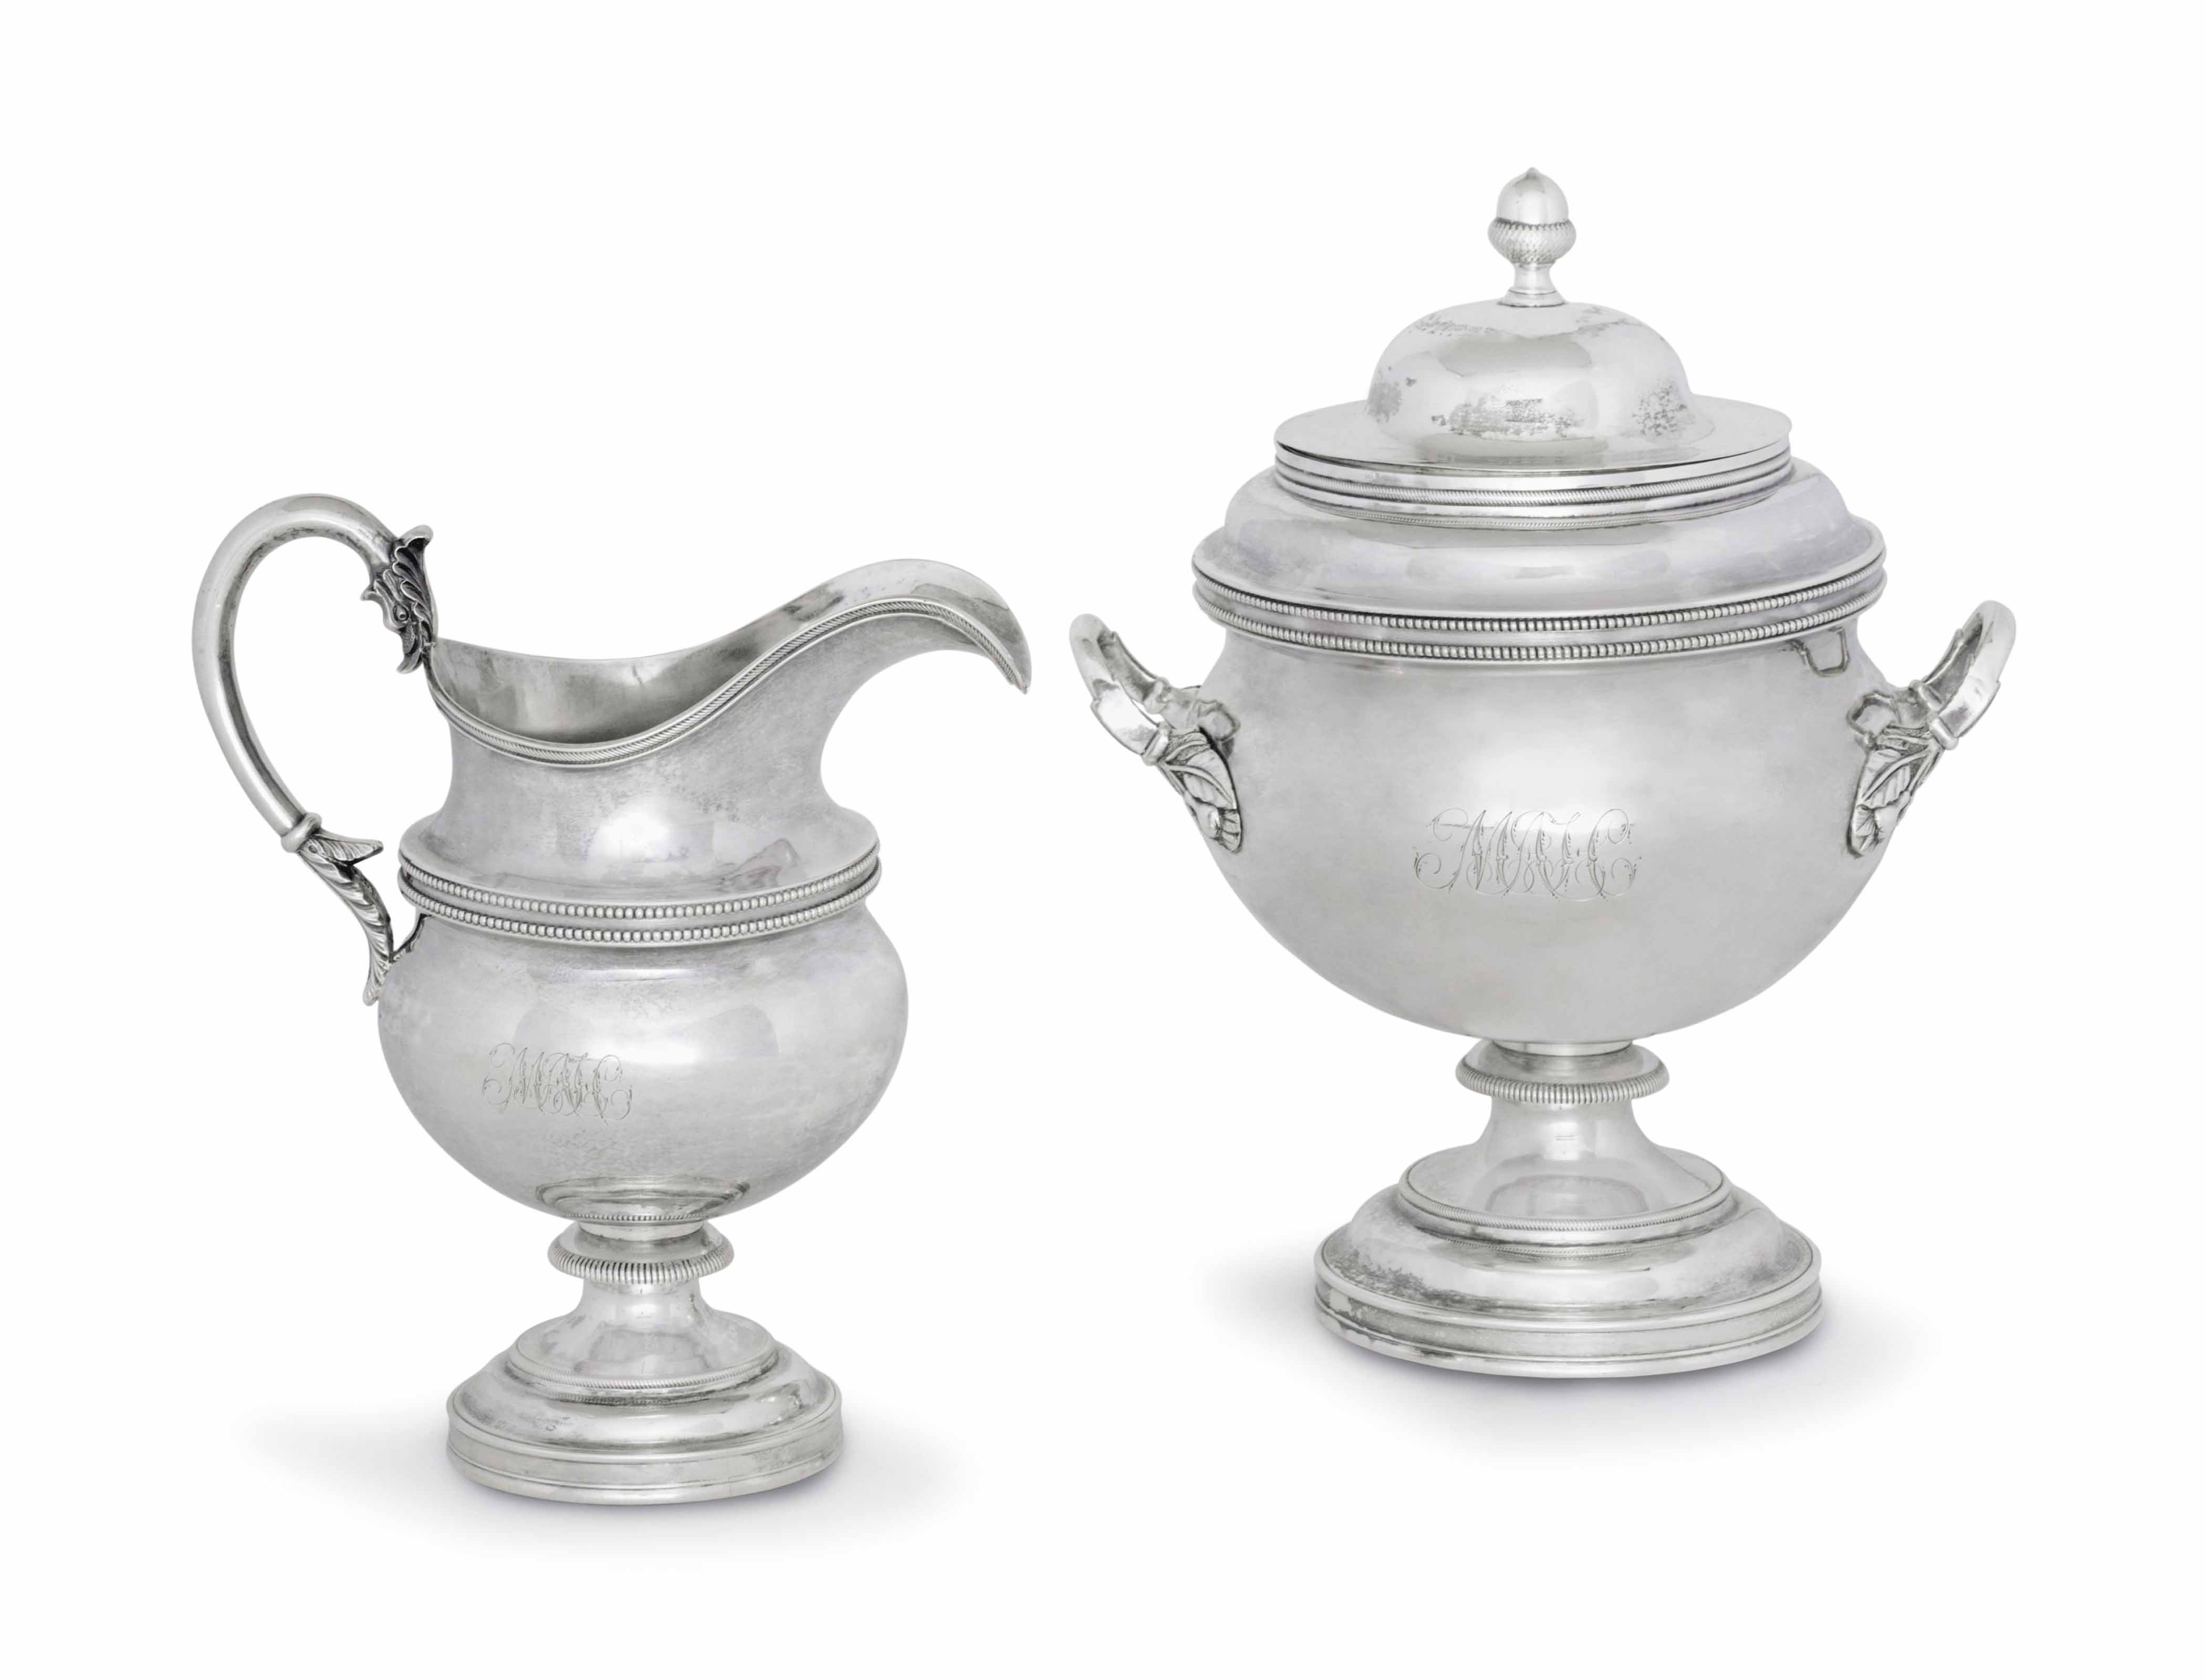 AN EARLY SILVER MILK JUG AND A TWO-HANDLED SUGAR BOWL AND COVER